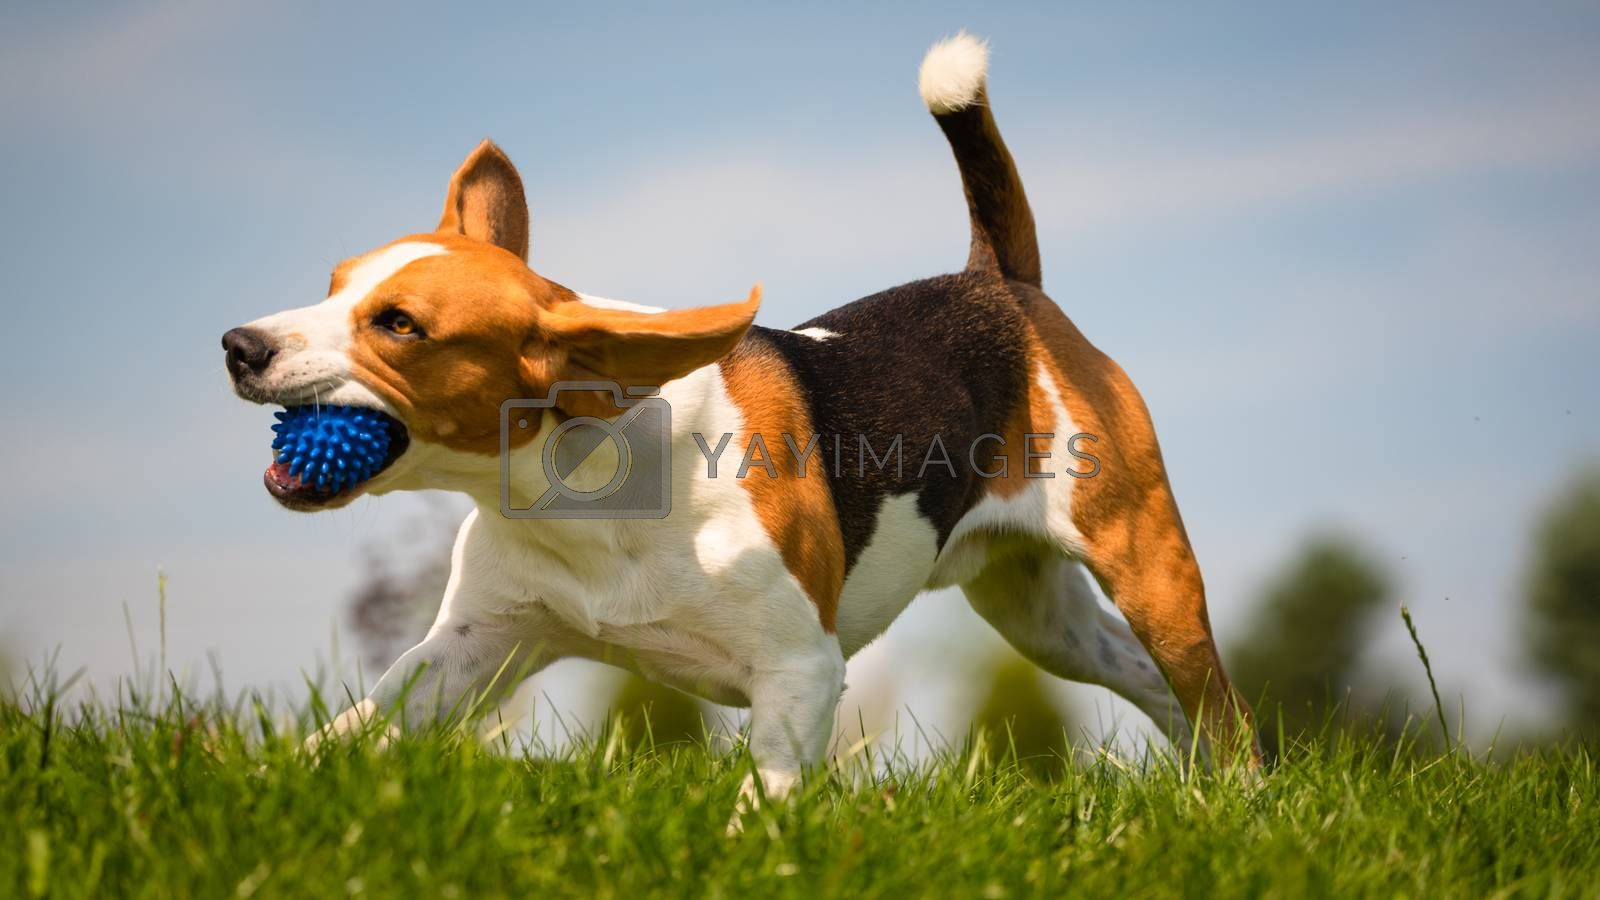 Beagle dog fun in park outdoors run and jump with ball towards camera. Dog background.